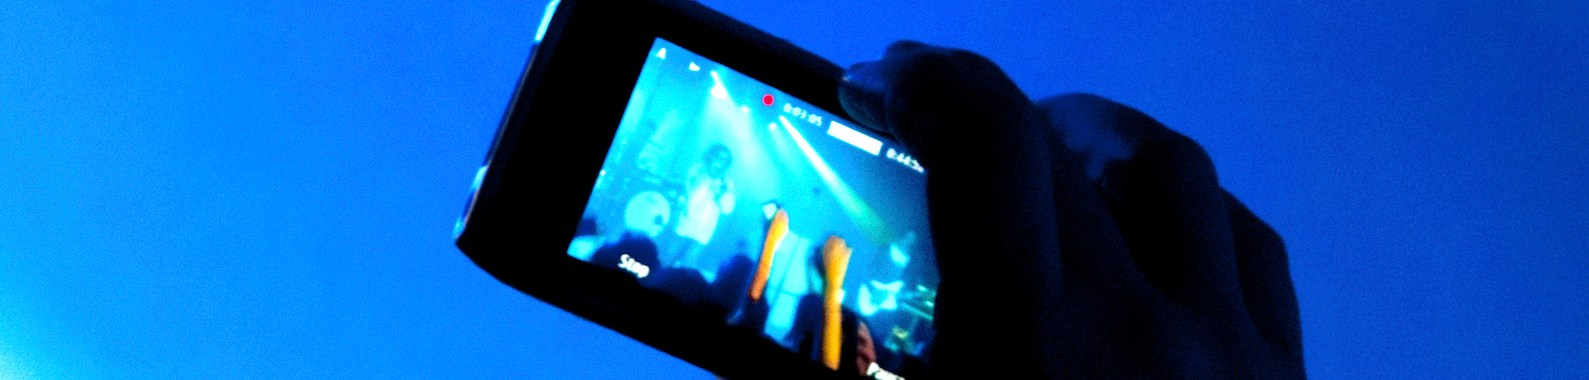 Concert video recording with cell phone